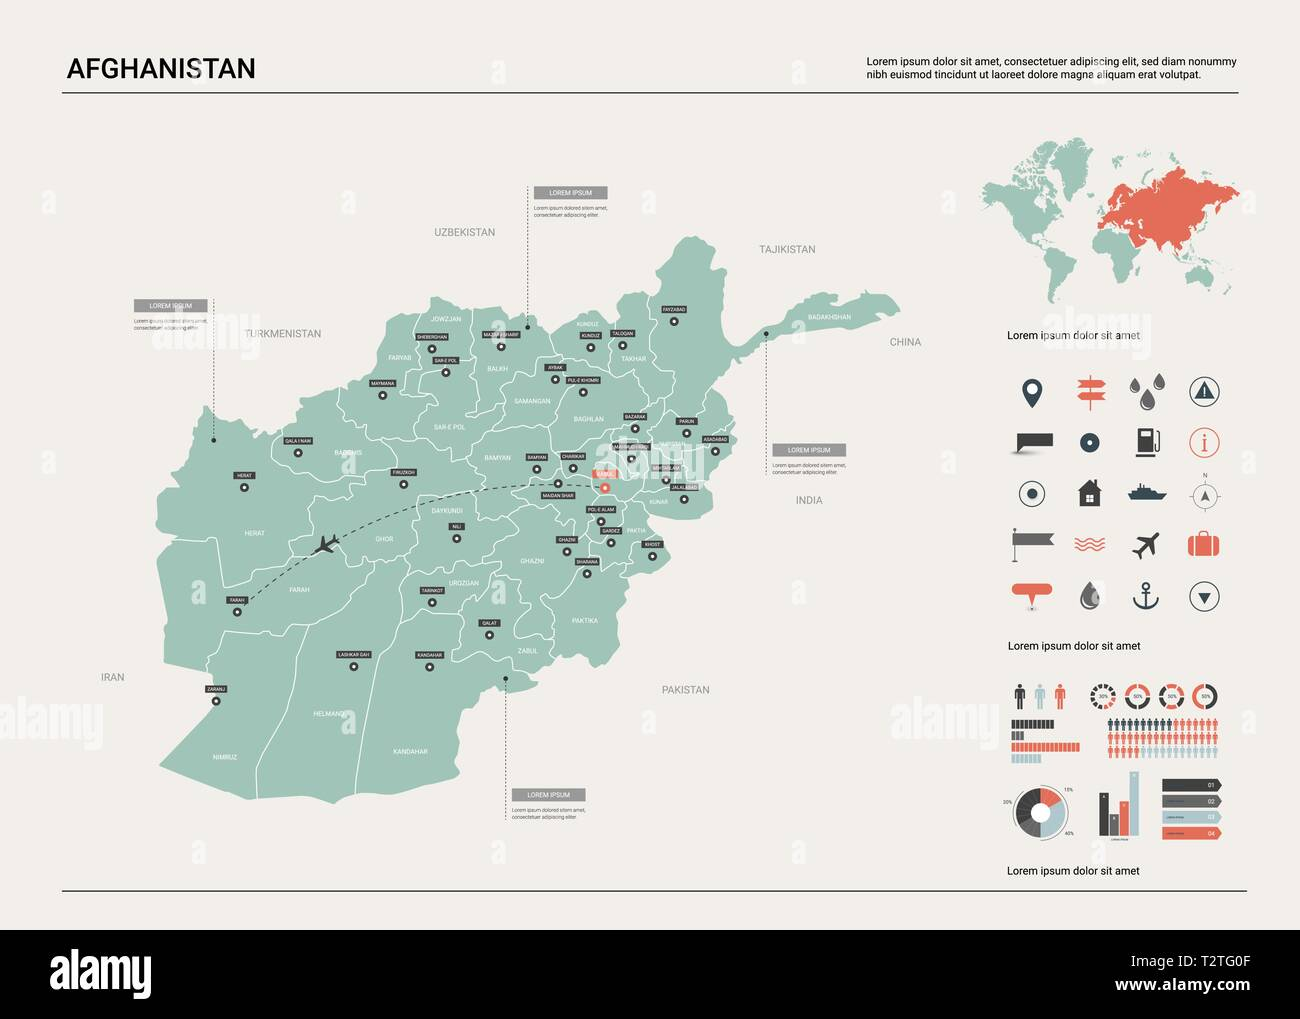 Vector map of Afghanistan . High detailed country map with division on pyongyang on world map, kolkata world map, sydney world map, algiers world map, new delhi world map, jakarta world map, khartoum world map, novosibirsk world map, kathmandu world map, yerevan world map, buenos aires world map, cairo world map, damascus world map, herat world map, riyadh world map, baku on world map, samarkand world map, lima world map, tehran world map, rabat world map,